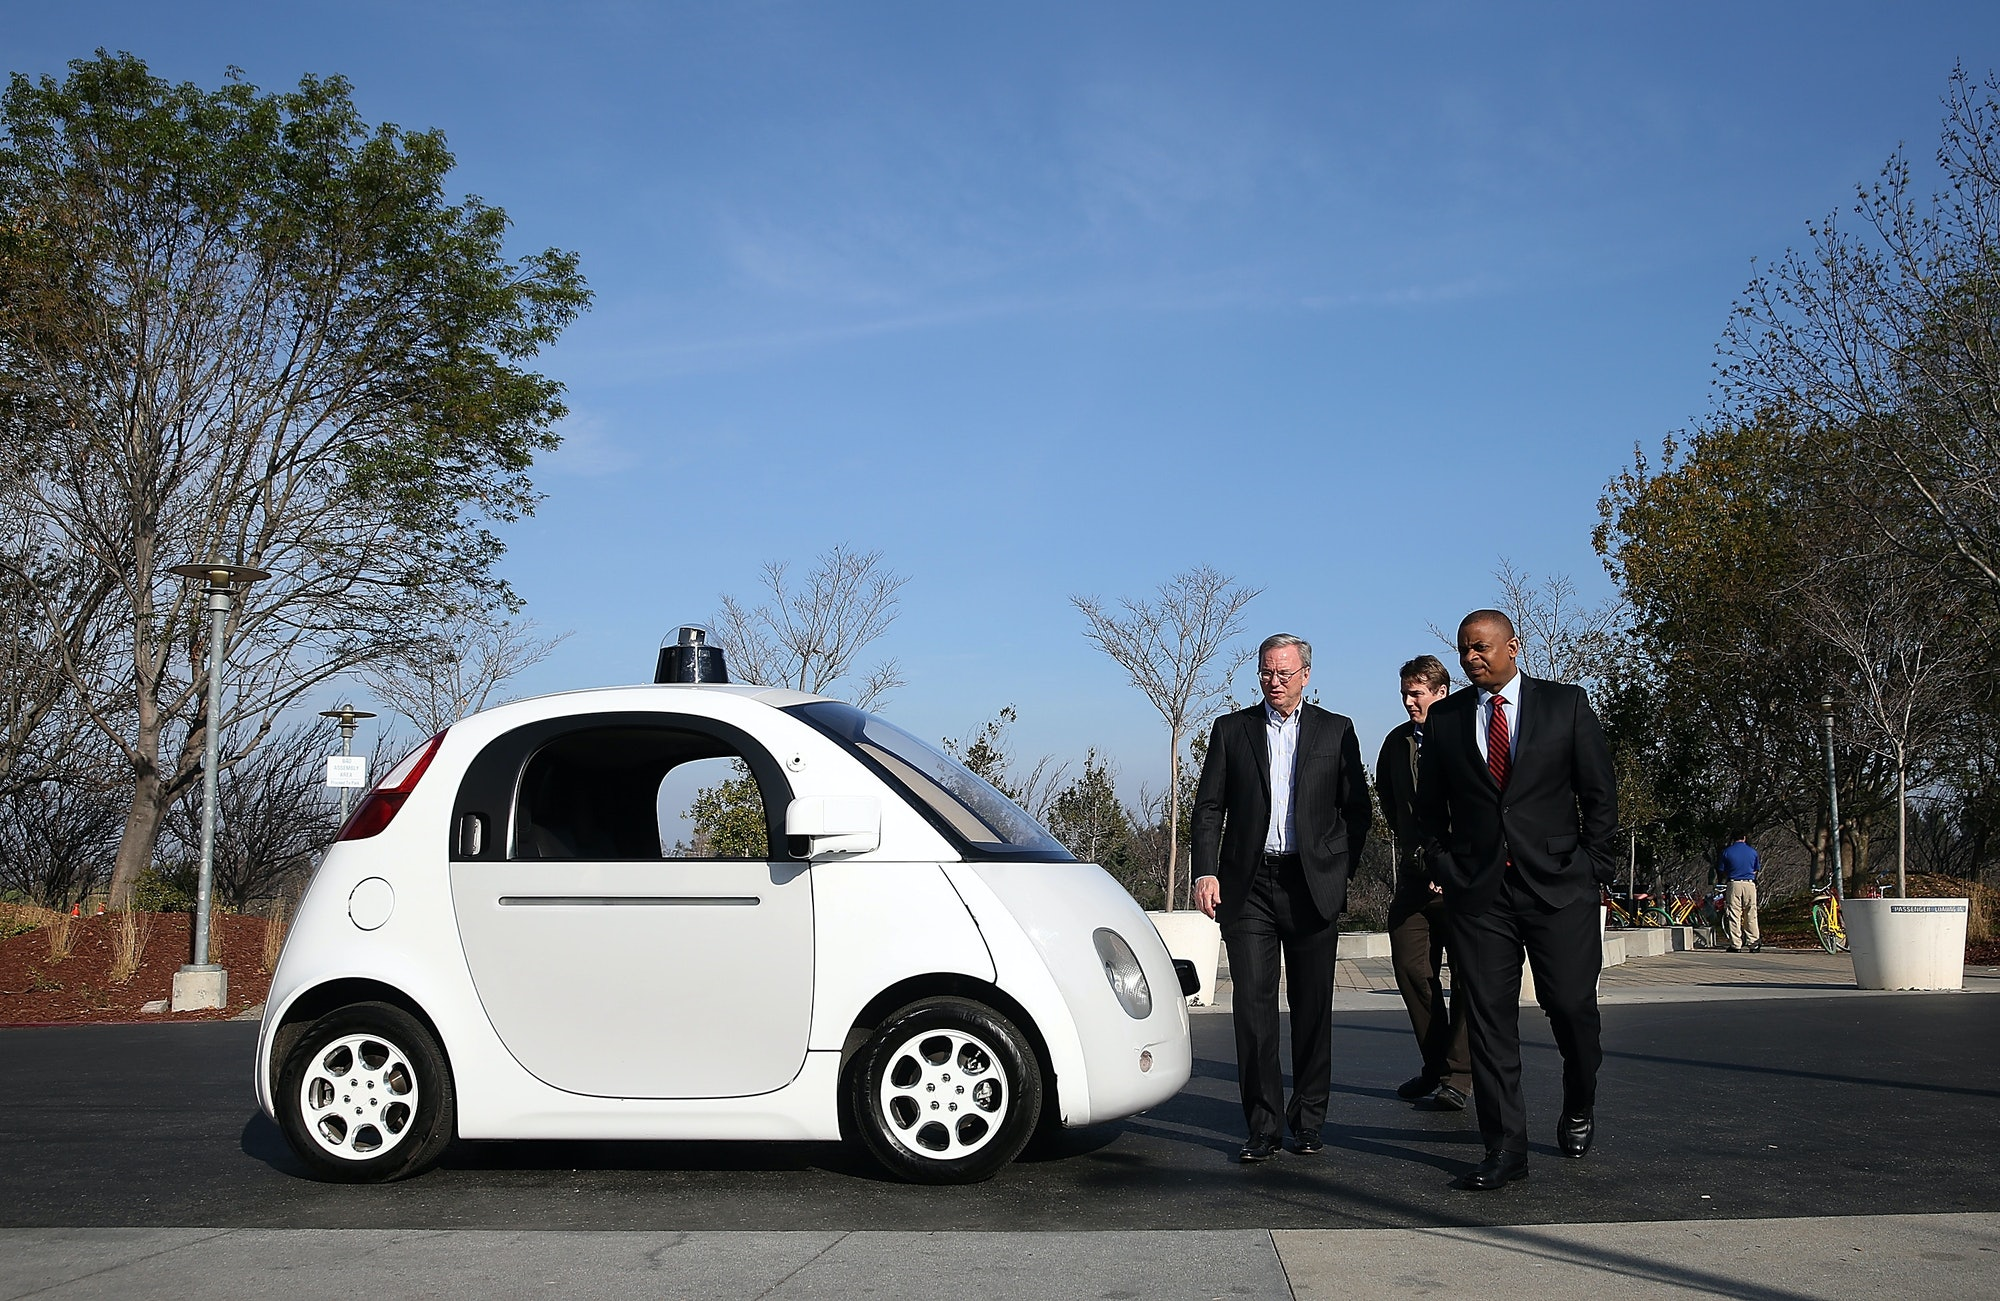 MOUNTAIN VIEW, CA - FEBRUARY 02: U.S. Transportation Secretary Anthony Foxx (R) and Google Chairman Eric Schmidt (L) walk around a Google self-driving car at the Google headquarters on February 2,2015in Mountain View, California. U.S. Transportation Secretary Anthony Foxx joined Google Chairman Eric Schmidt for a fireside chat where he unveiled Beyond Traffic, a new analysis from the U.S. Department of Transportation that anticipates the trends and choices facing our transportation system over the next three decades. (Photo by Justin Sullivan/Getty Images)